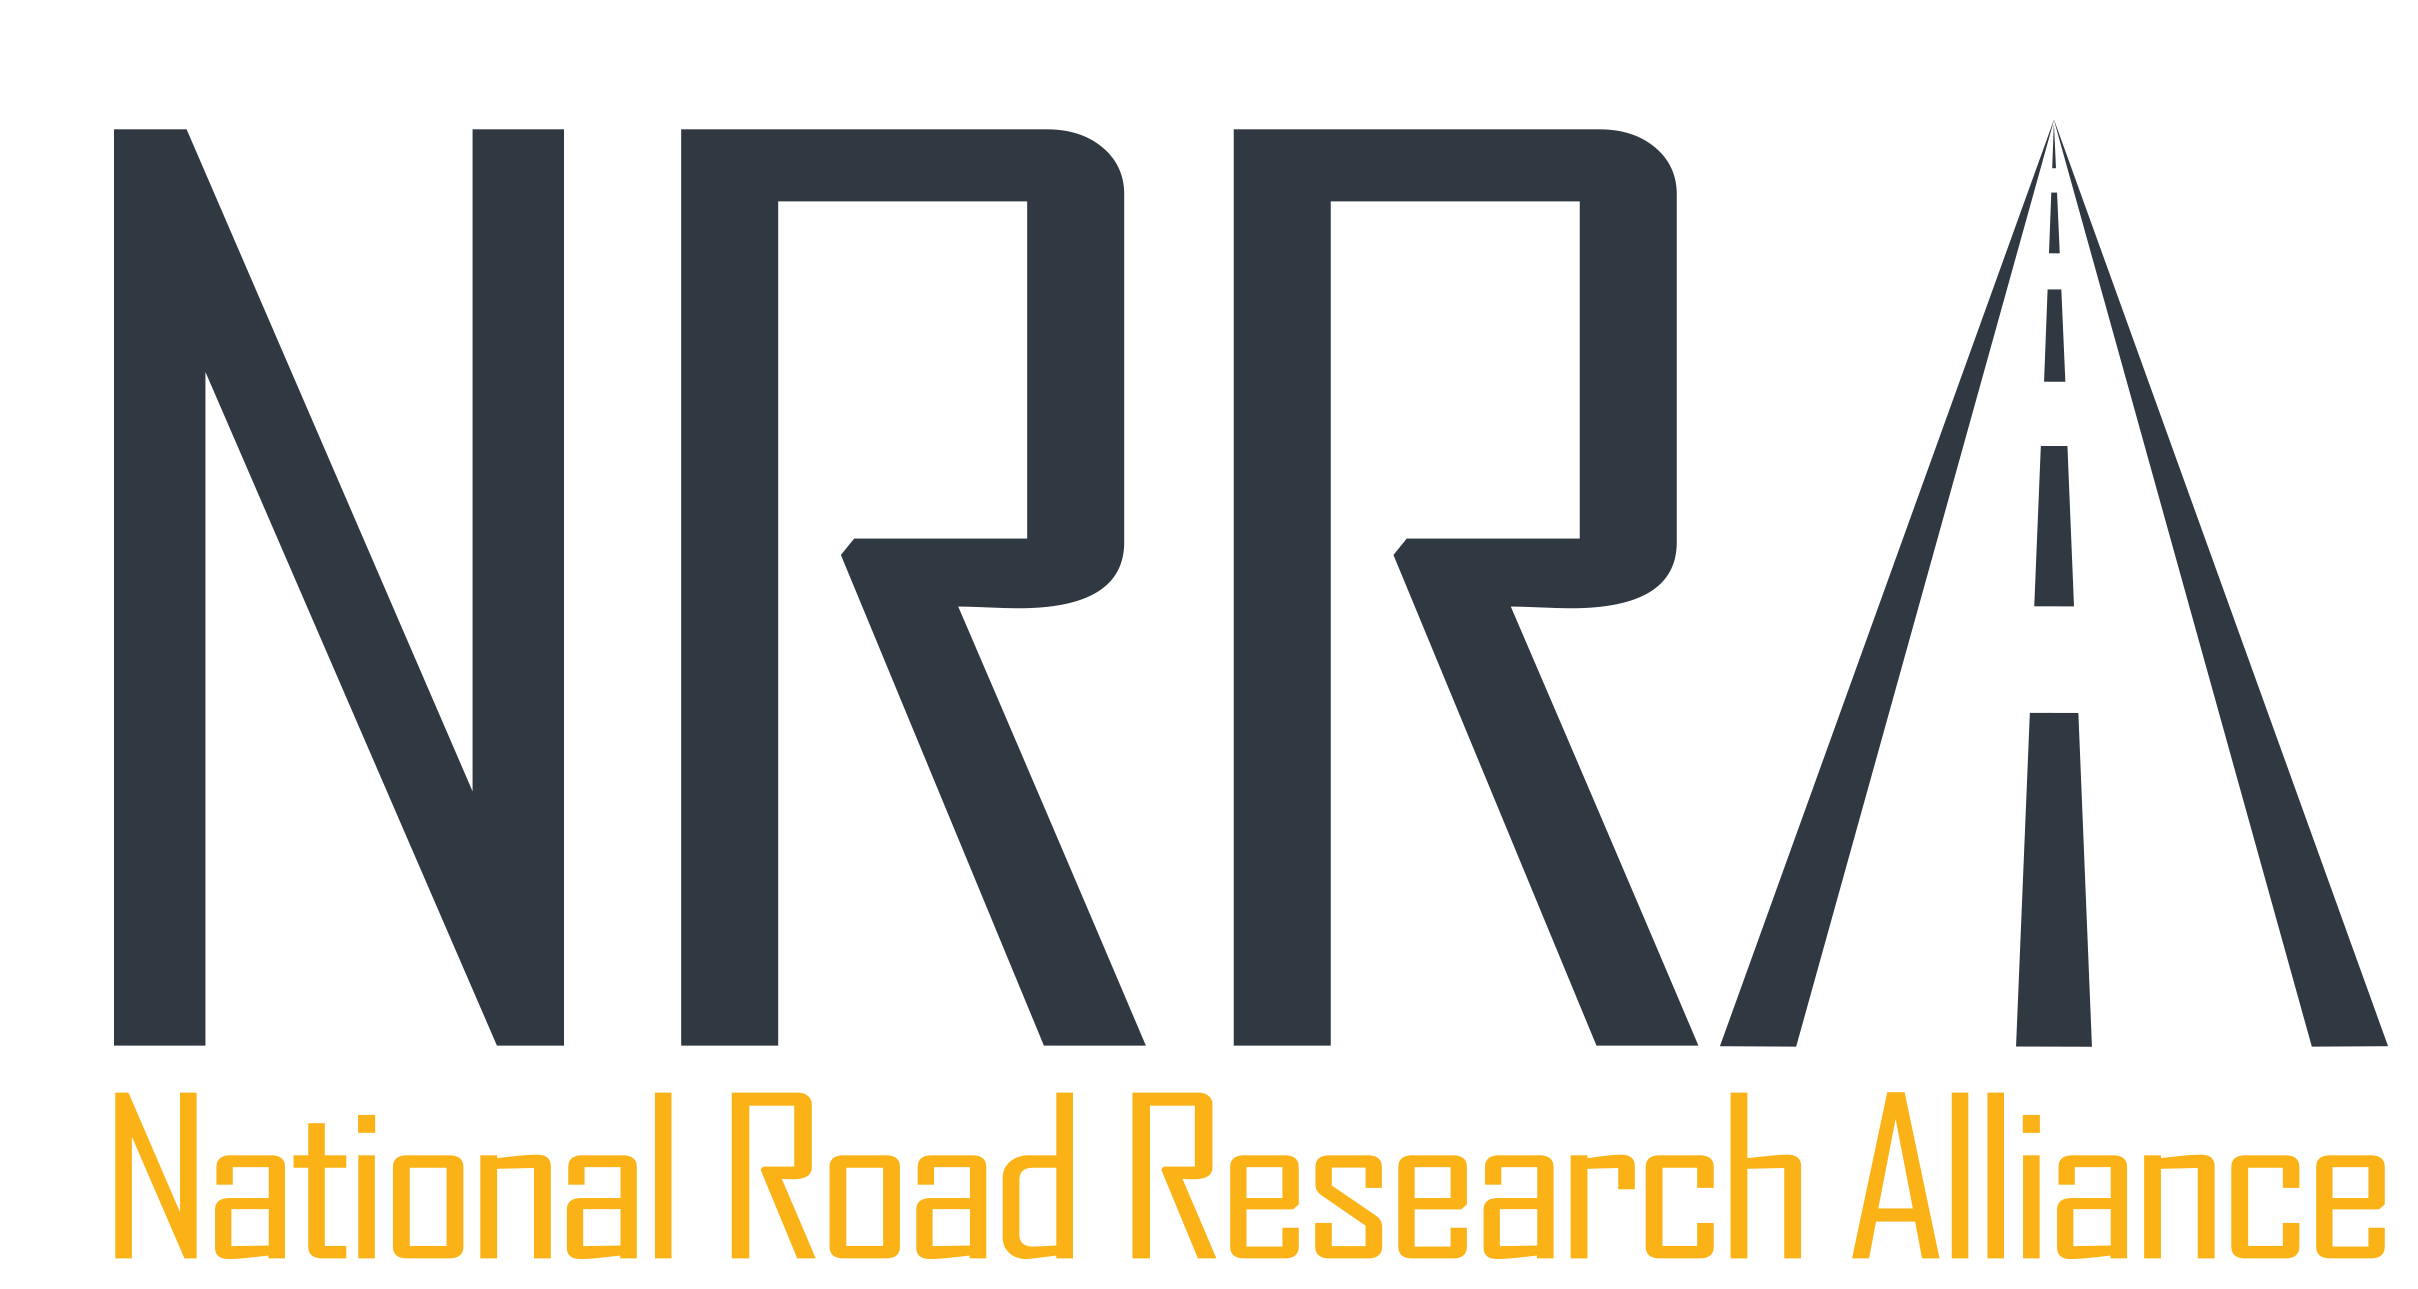 National Road Research Alliance Logo